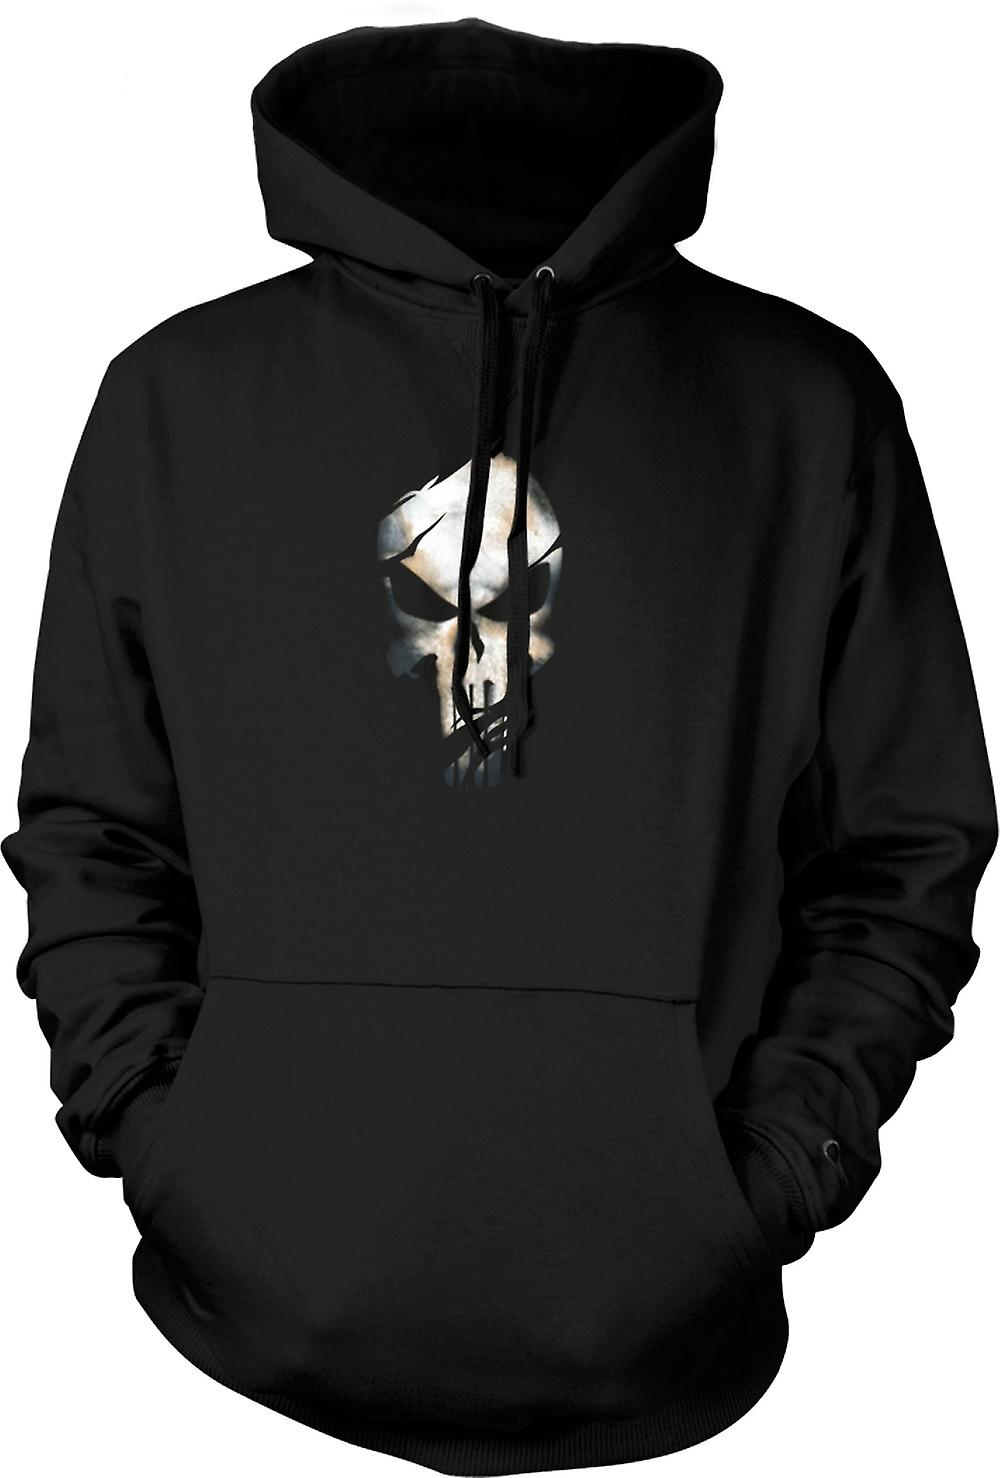 Mens Hoodie - Punisher - Riss-Effekt